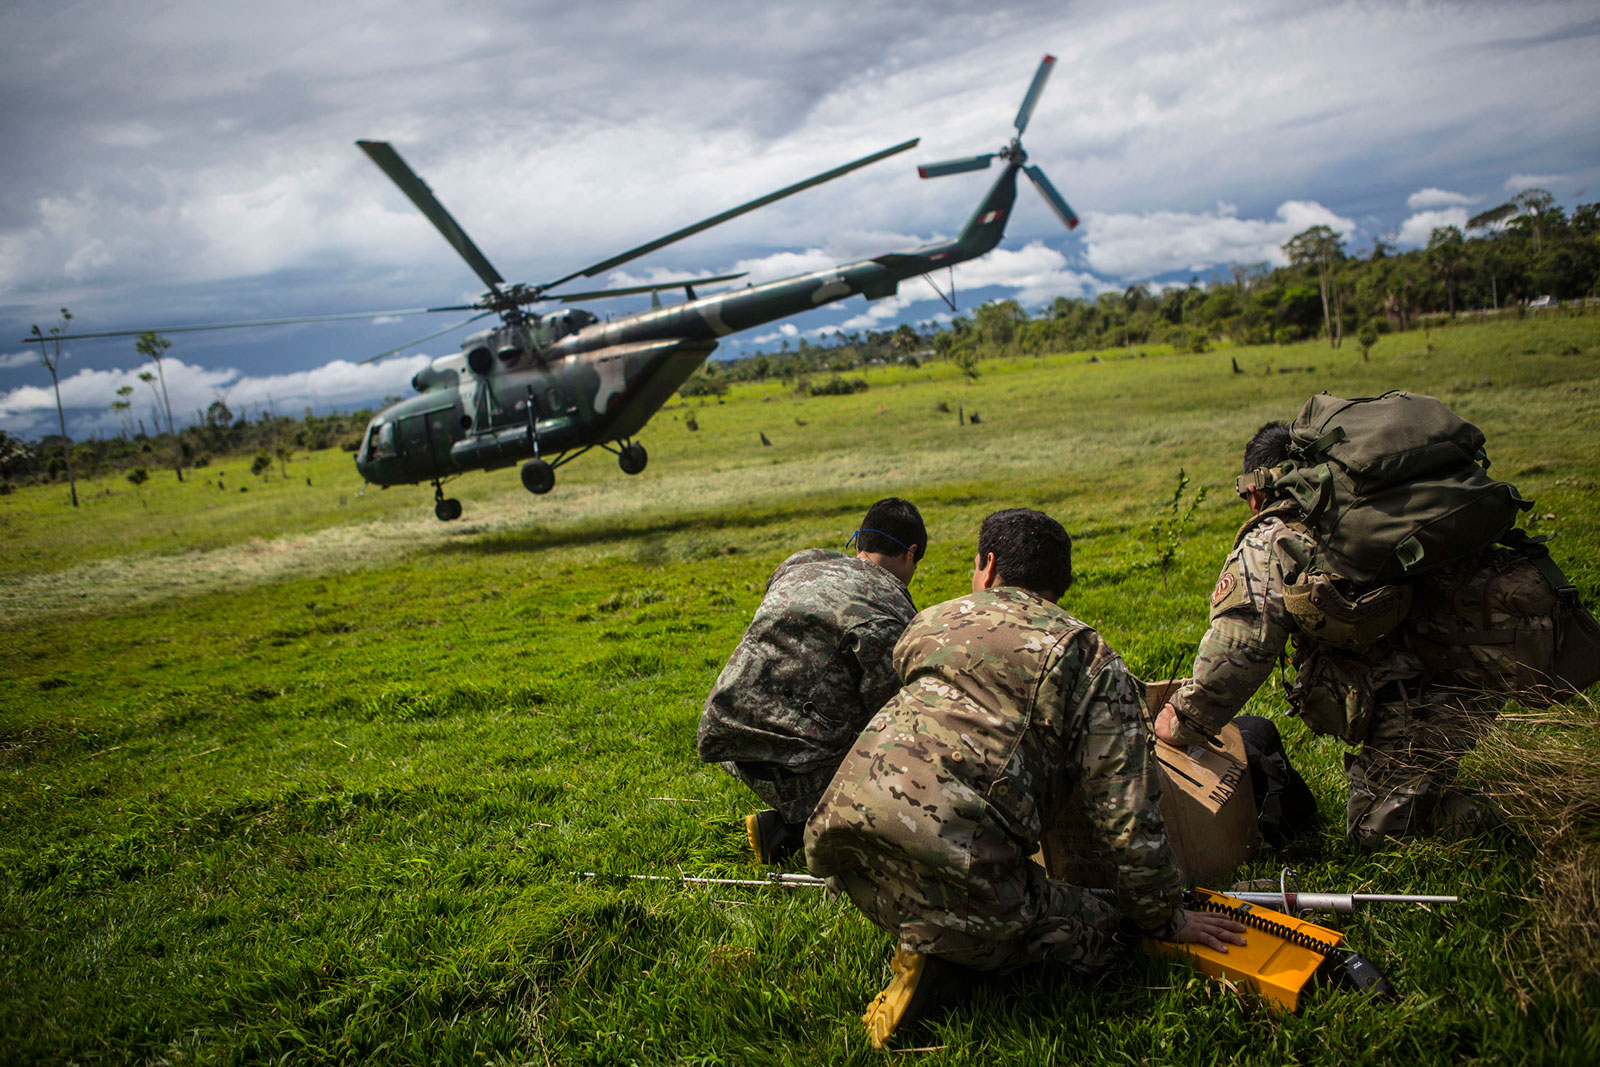 Police officers look on as a helicopter loaded with supplies and crew flies out to raid an illegal gold mining camp inside the Amazonian National Reserve buffering zone of Tambopata in Puerto Maldonado, Peru